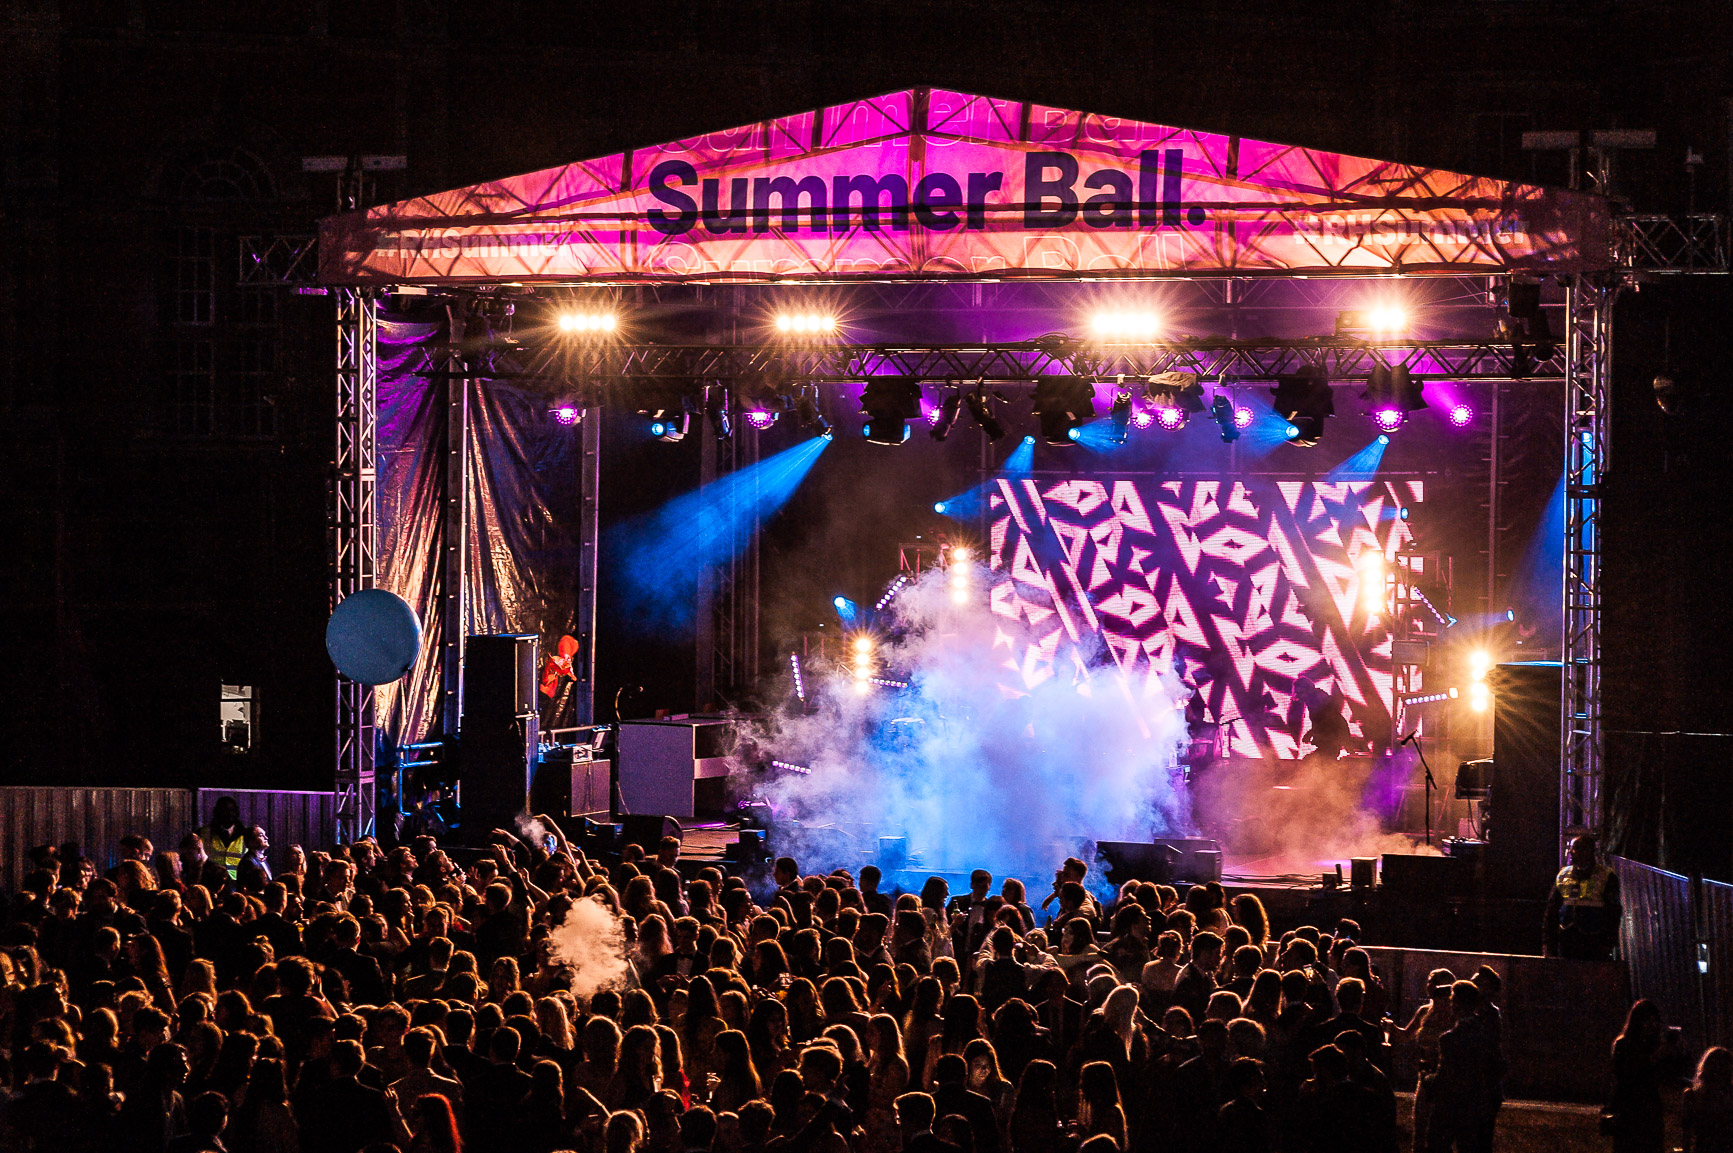 image of Main Stage lit up in pink and purple with smoke at Summer Ball 2019